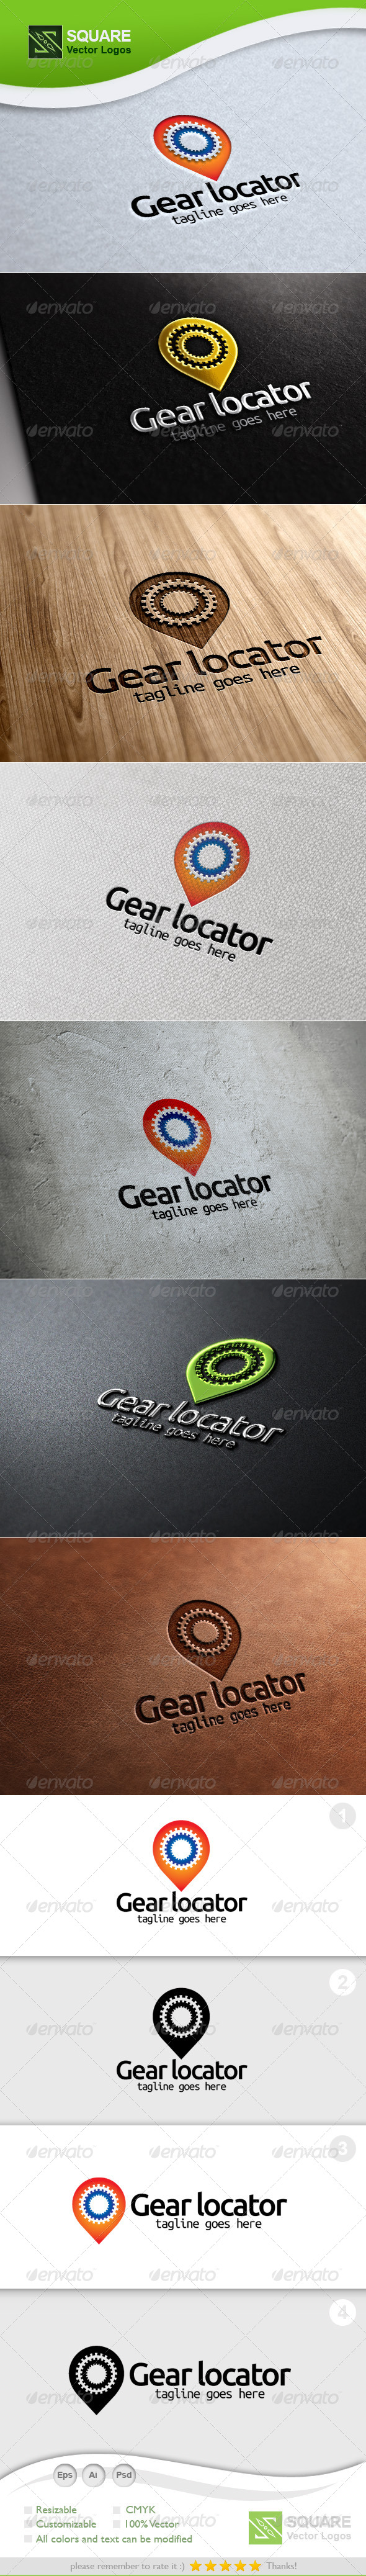 Gear, Locator Vector Logo Template - Objects Logo Templates